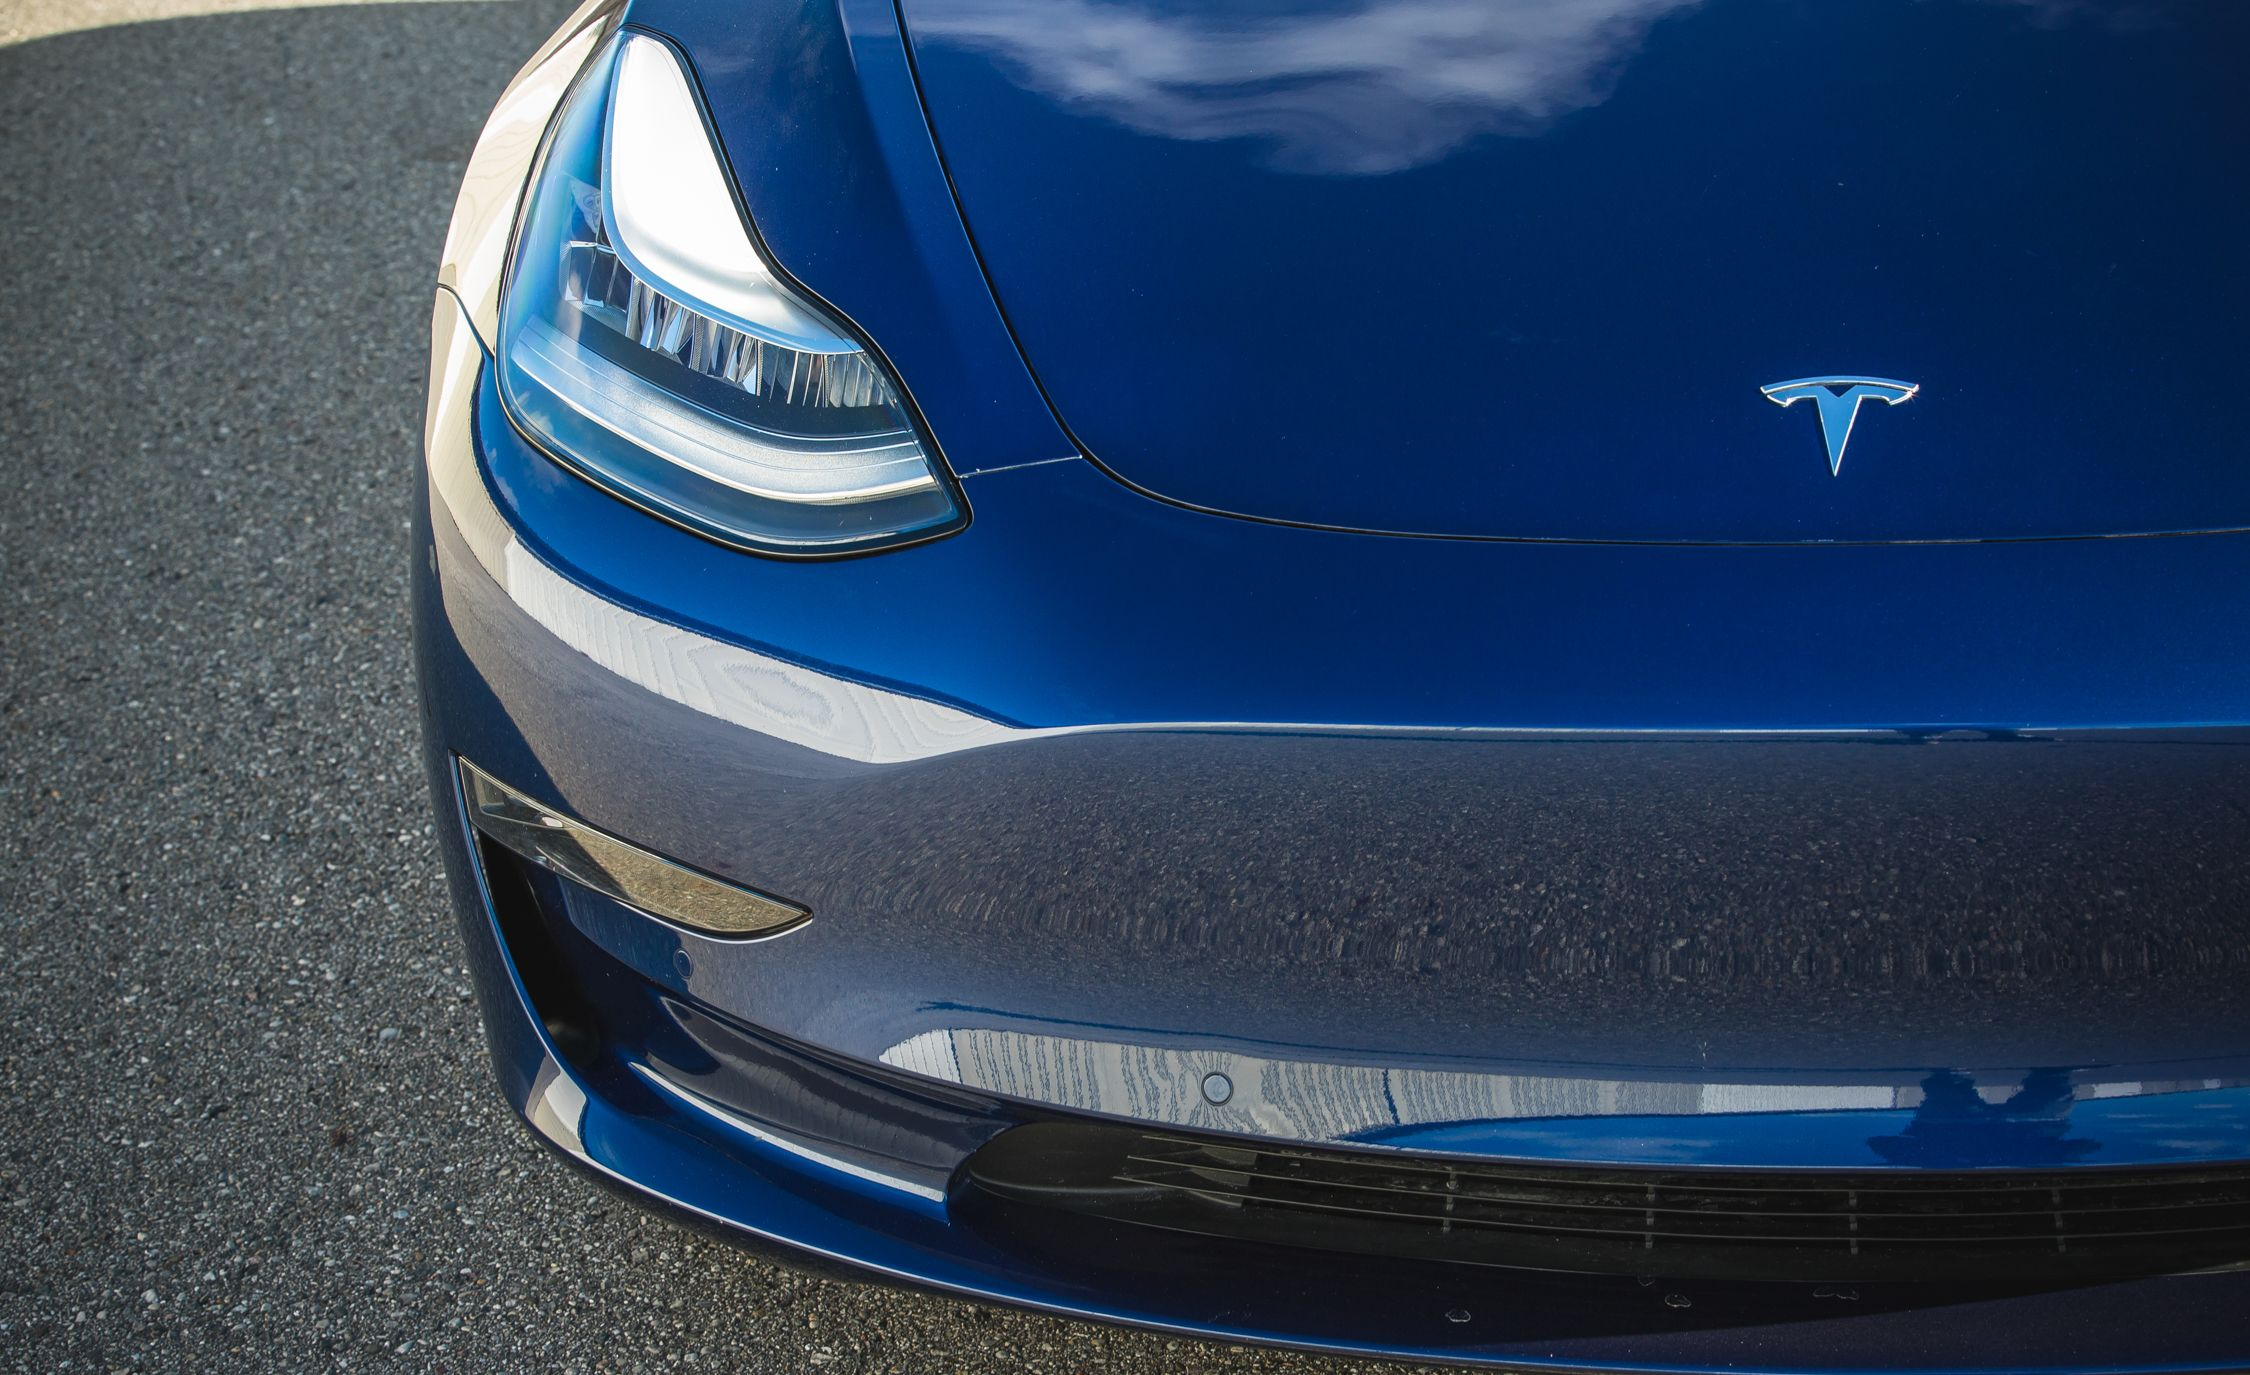 Consumer Reports Agrees Model 3 Reliability Not up to Par